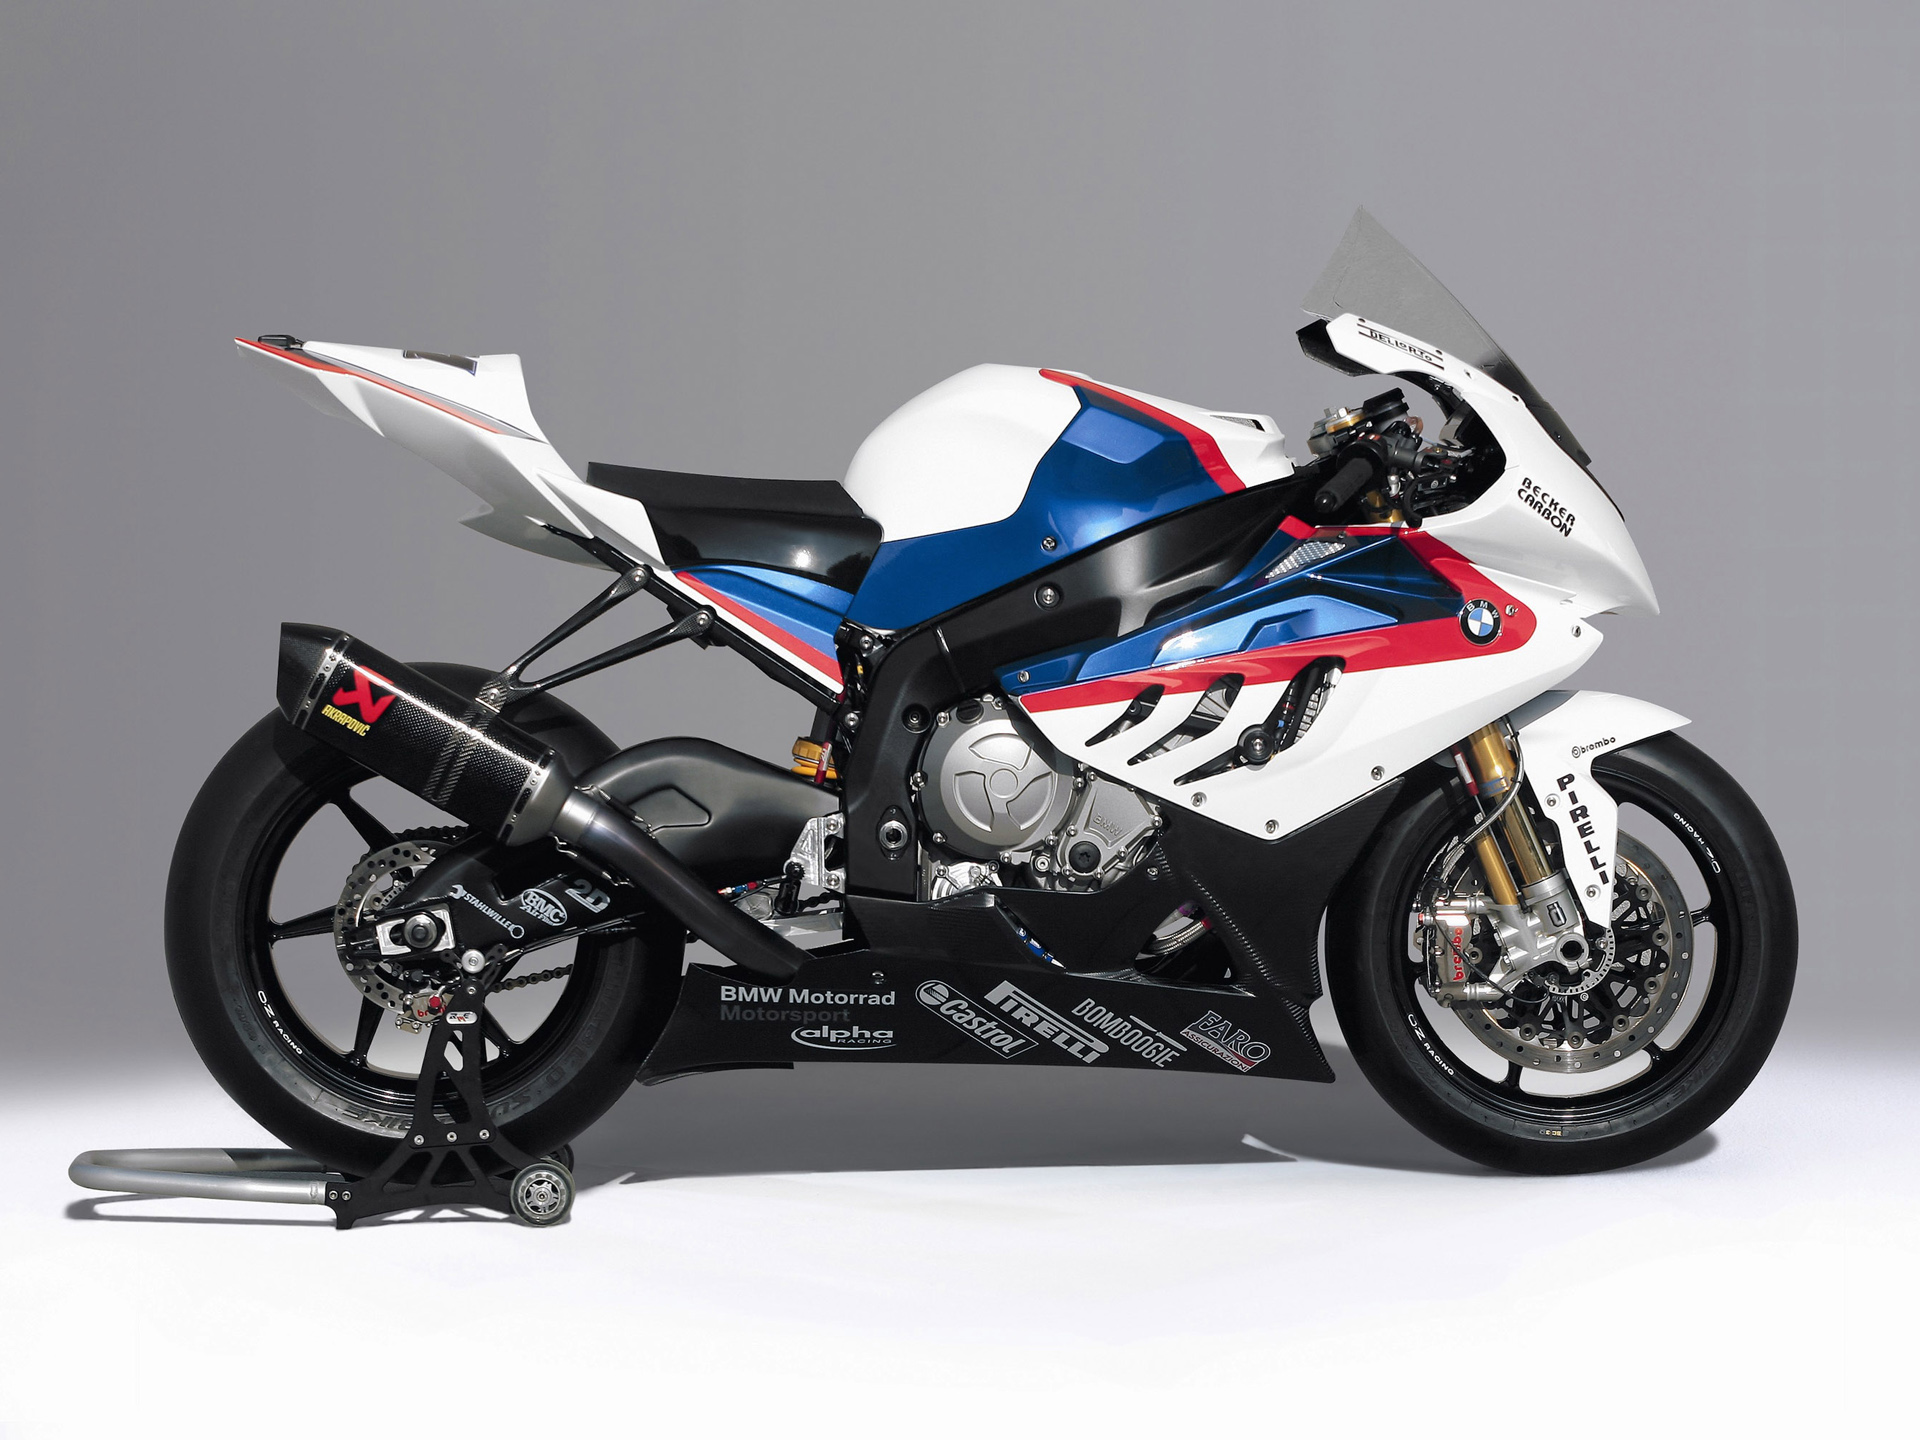 BMW S1000RR SBK photos - PhotoGallery with 5 pics| CarsBase.com